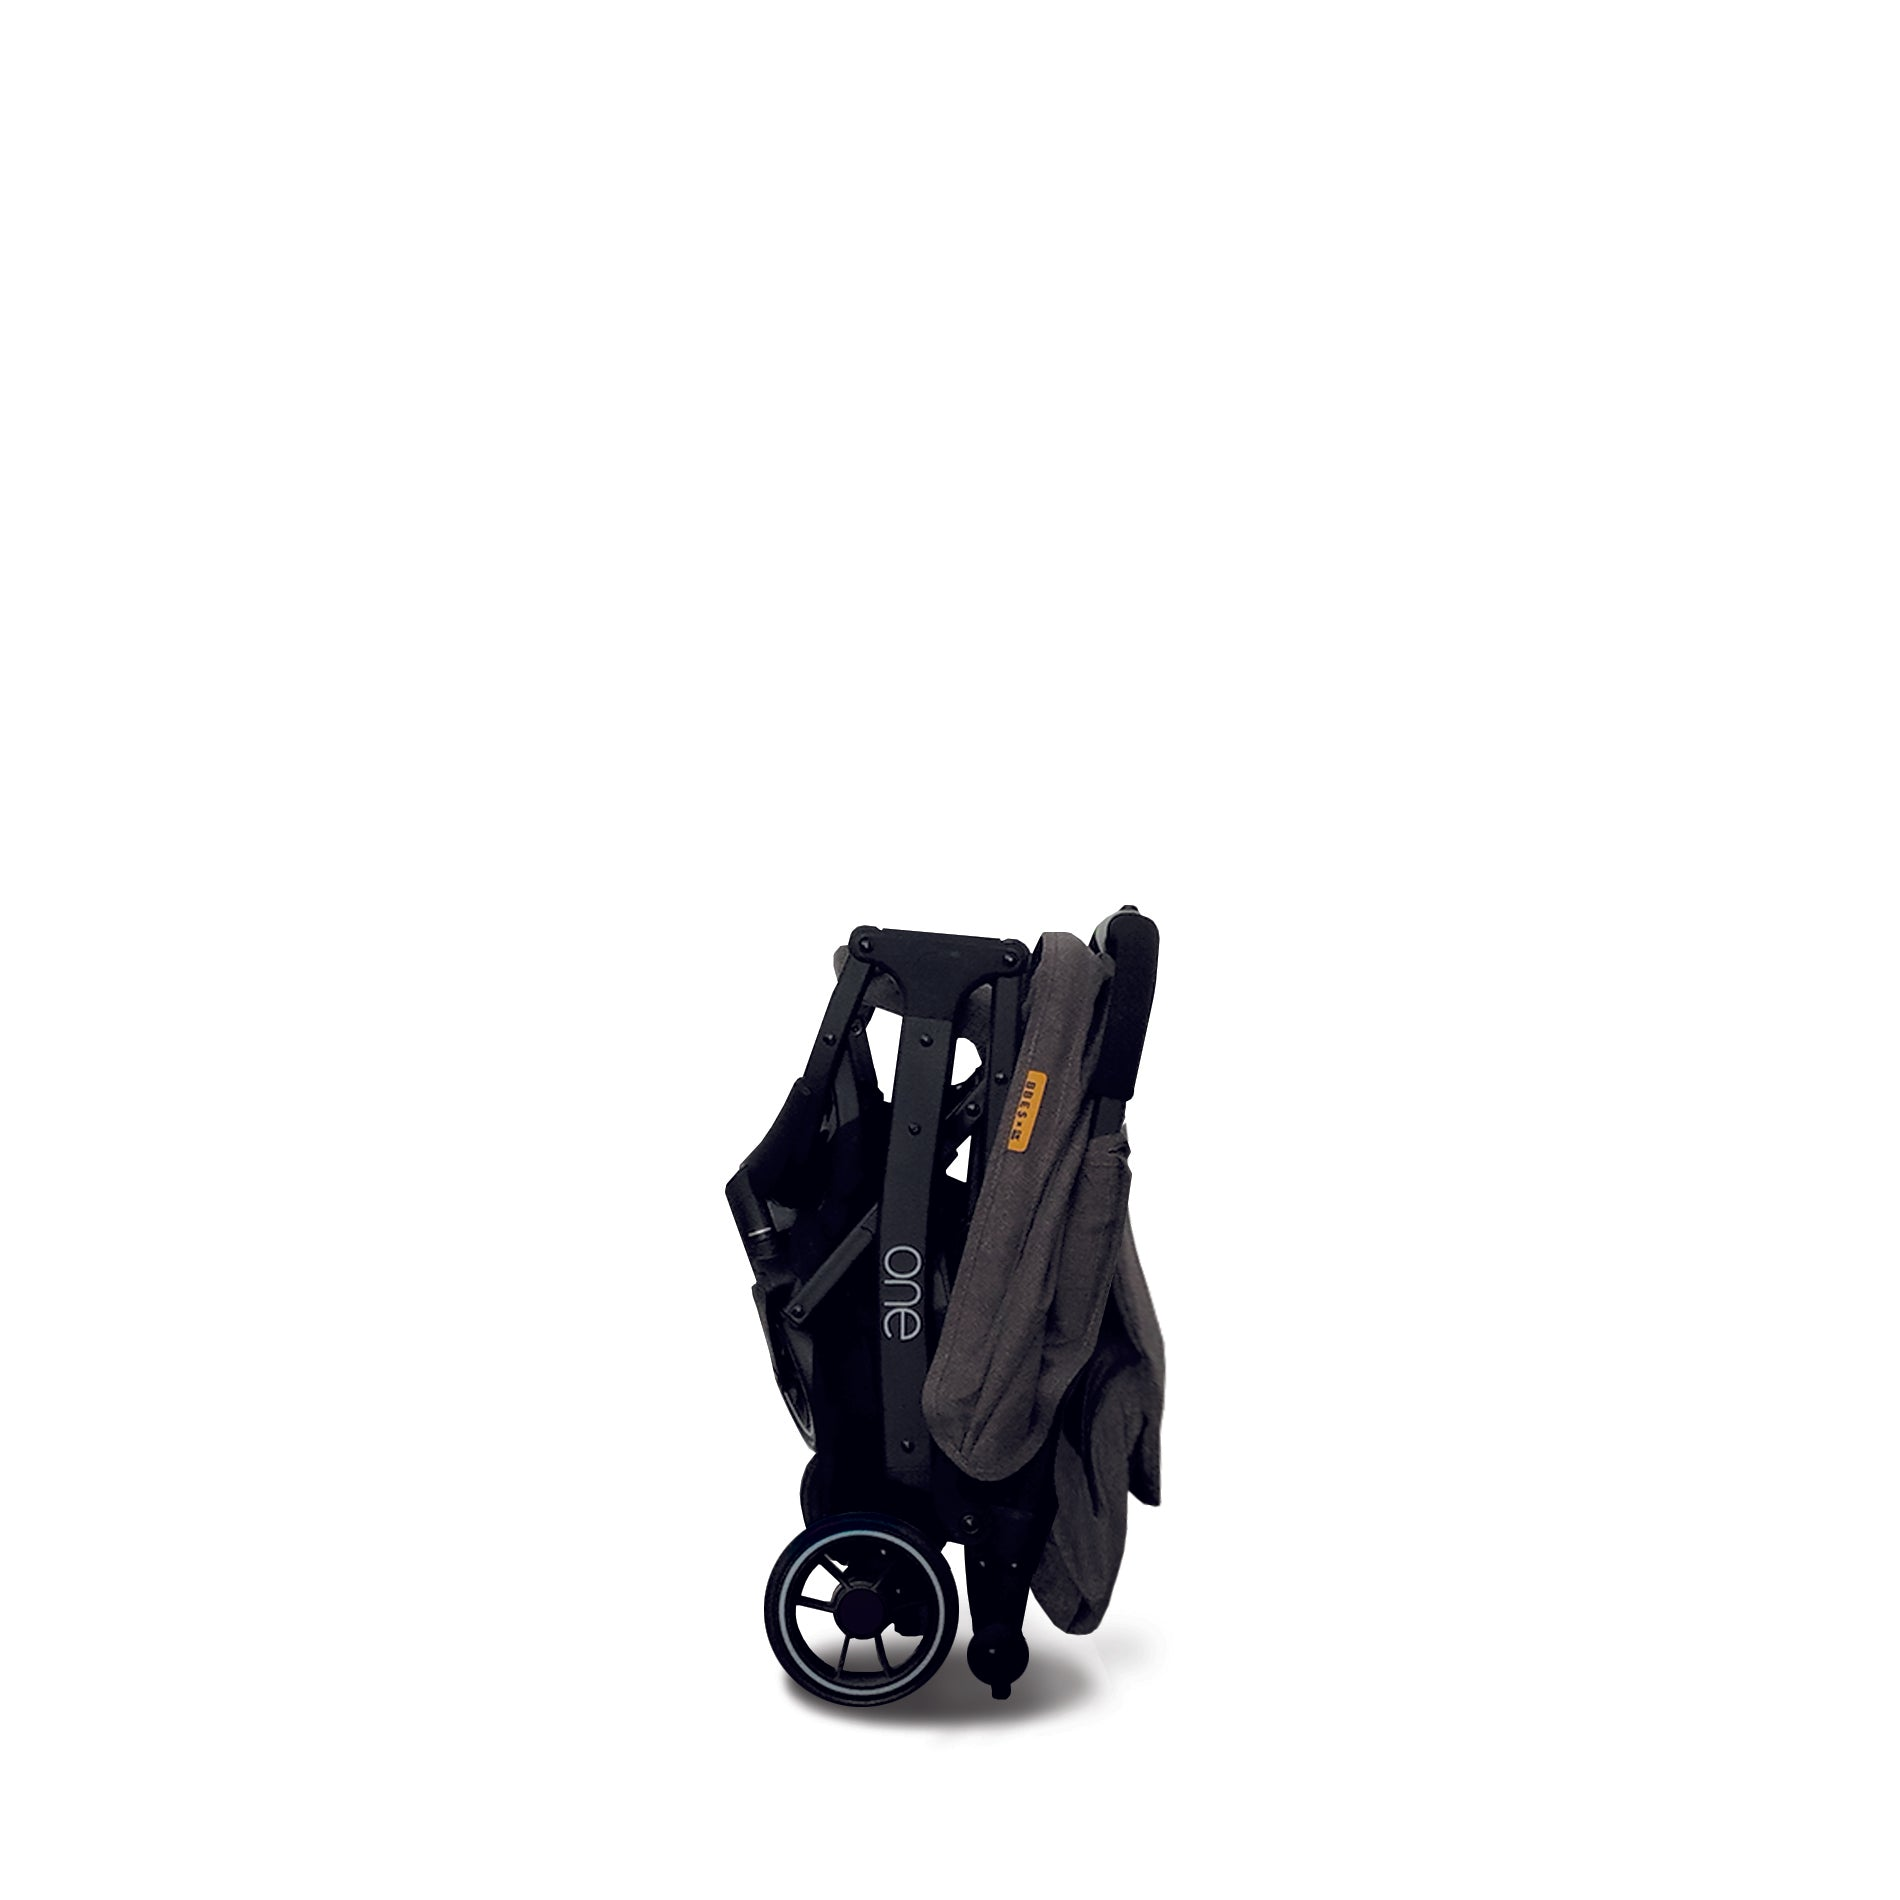 Silla de paseo Bbes One Total Black